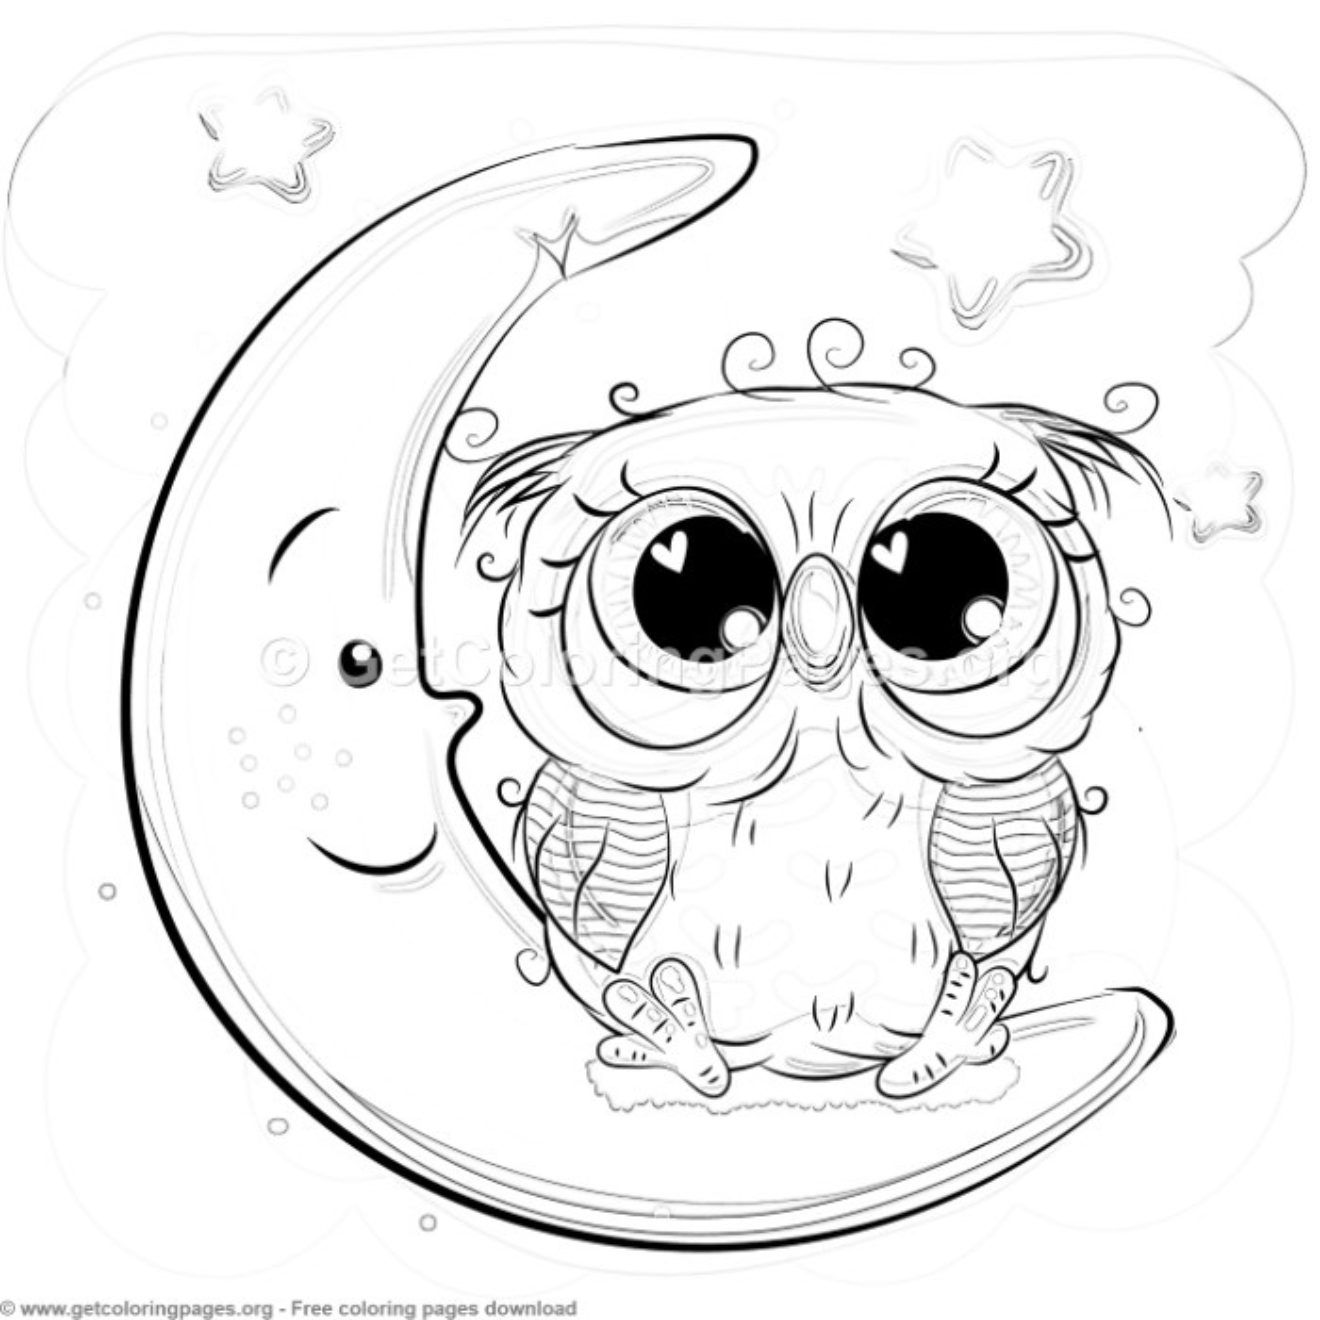 23 Cute Owl Coloring Pages Getcoloringpages Org Owl Coloring Pages Owl Drawing Simple Cute Coloring Pages